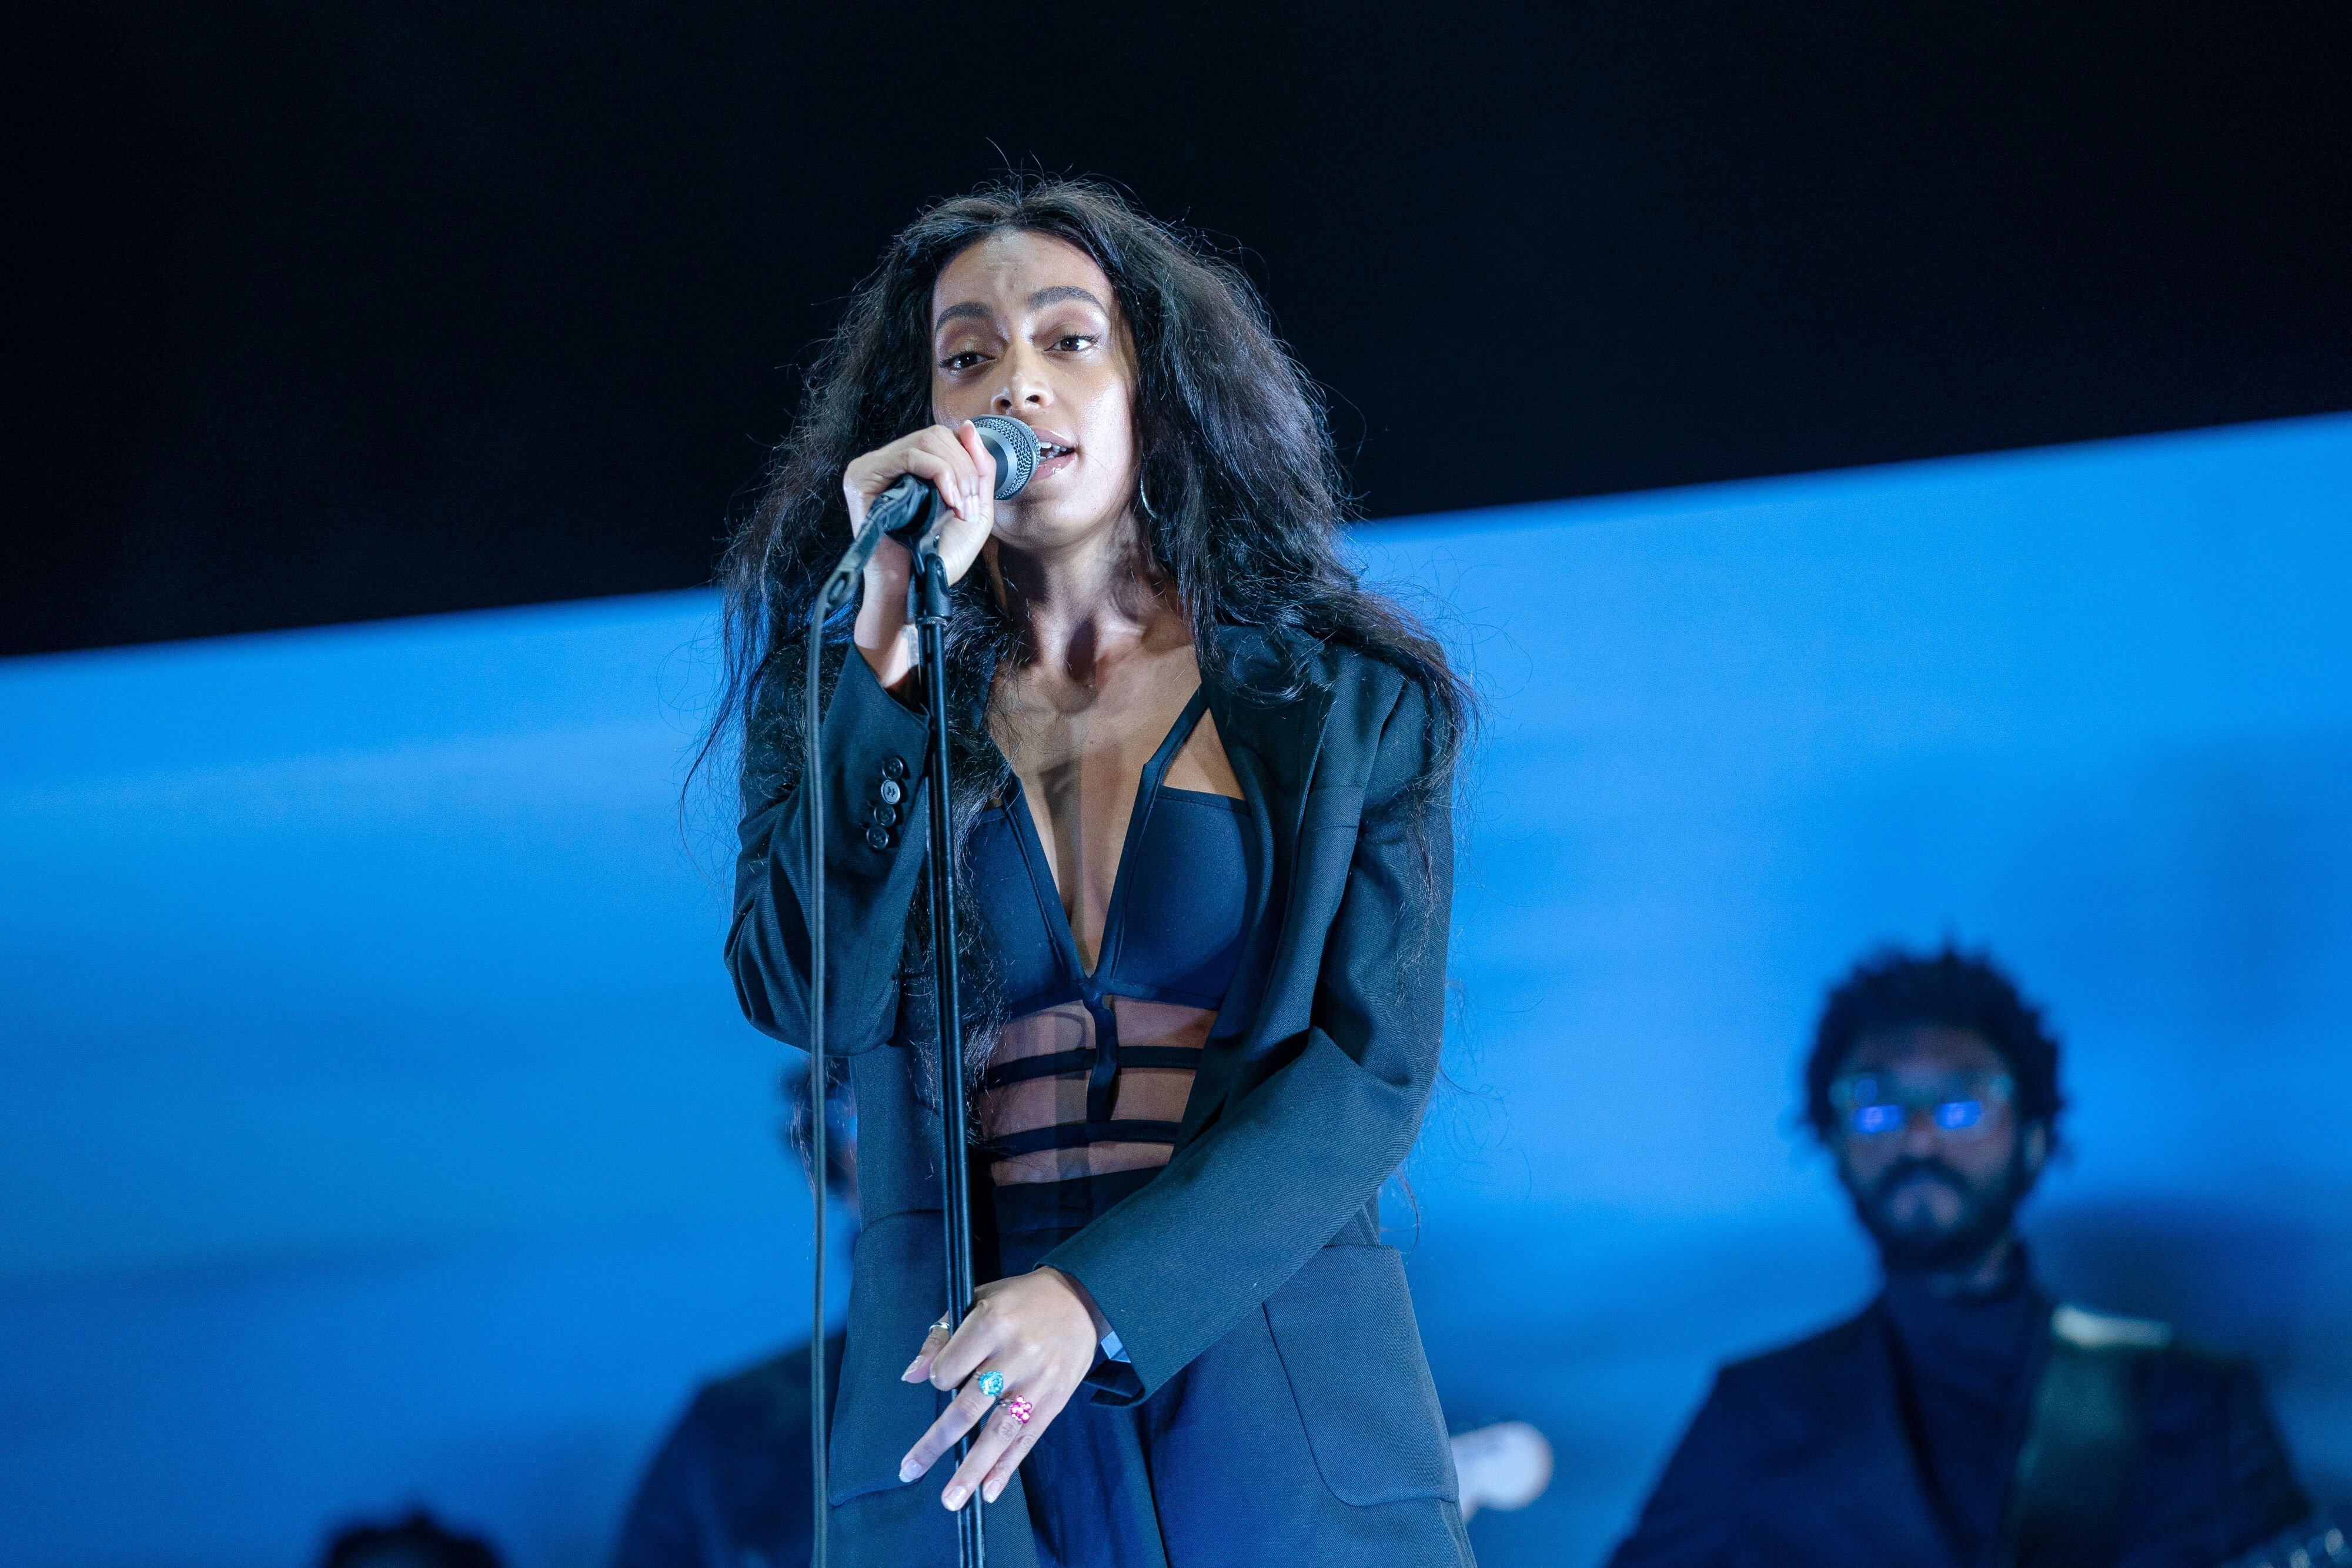 Solange at the Lovebox 2019 in Gunnersbury Park in London/ Source: Getty Images